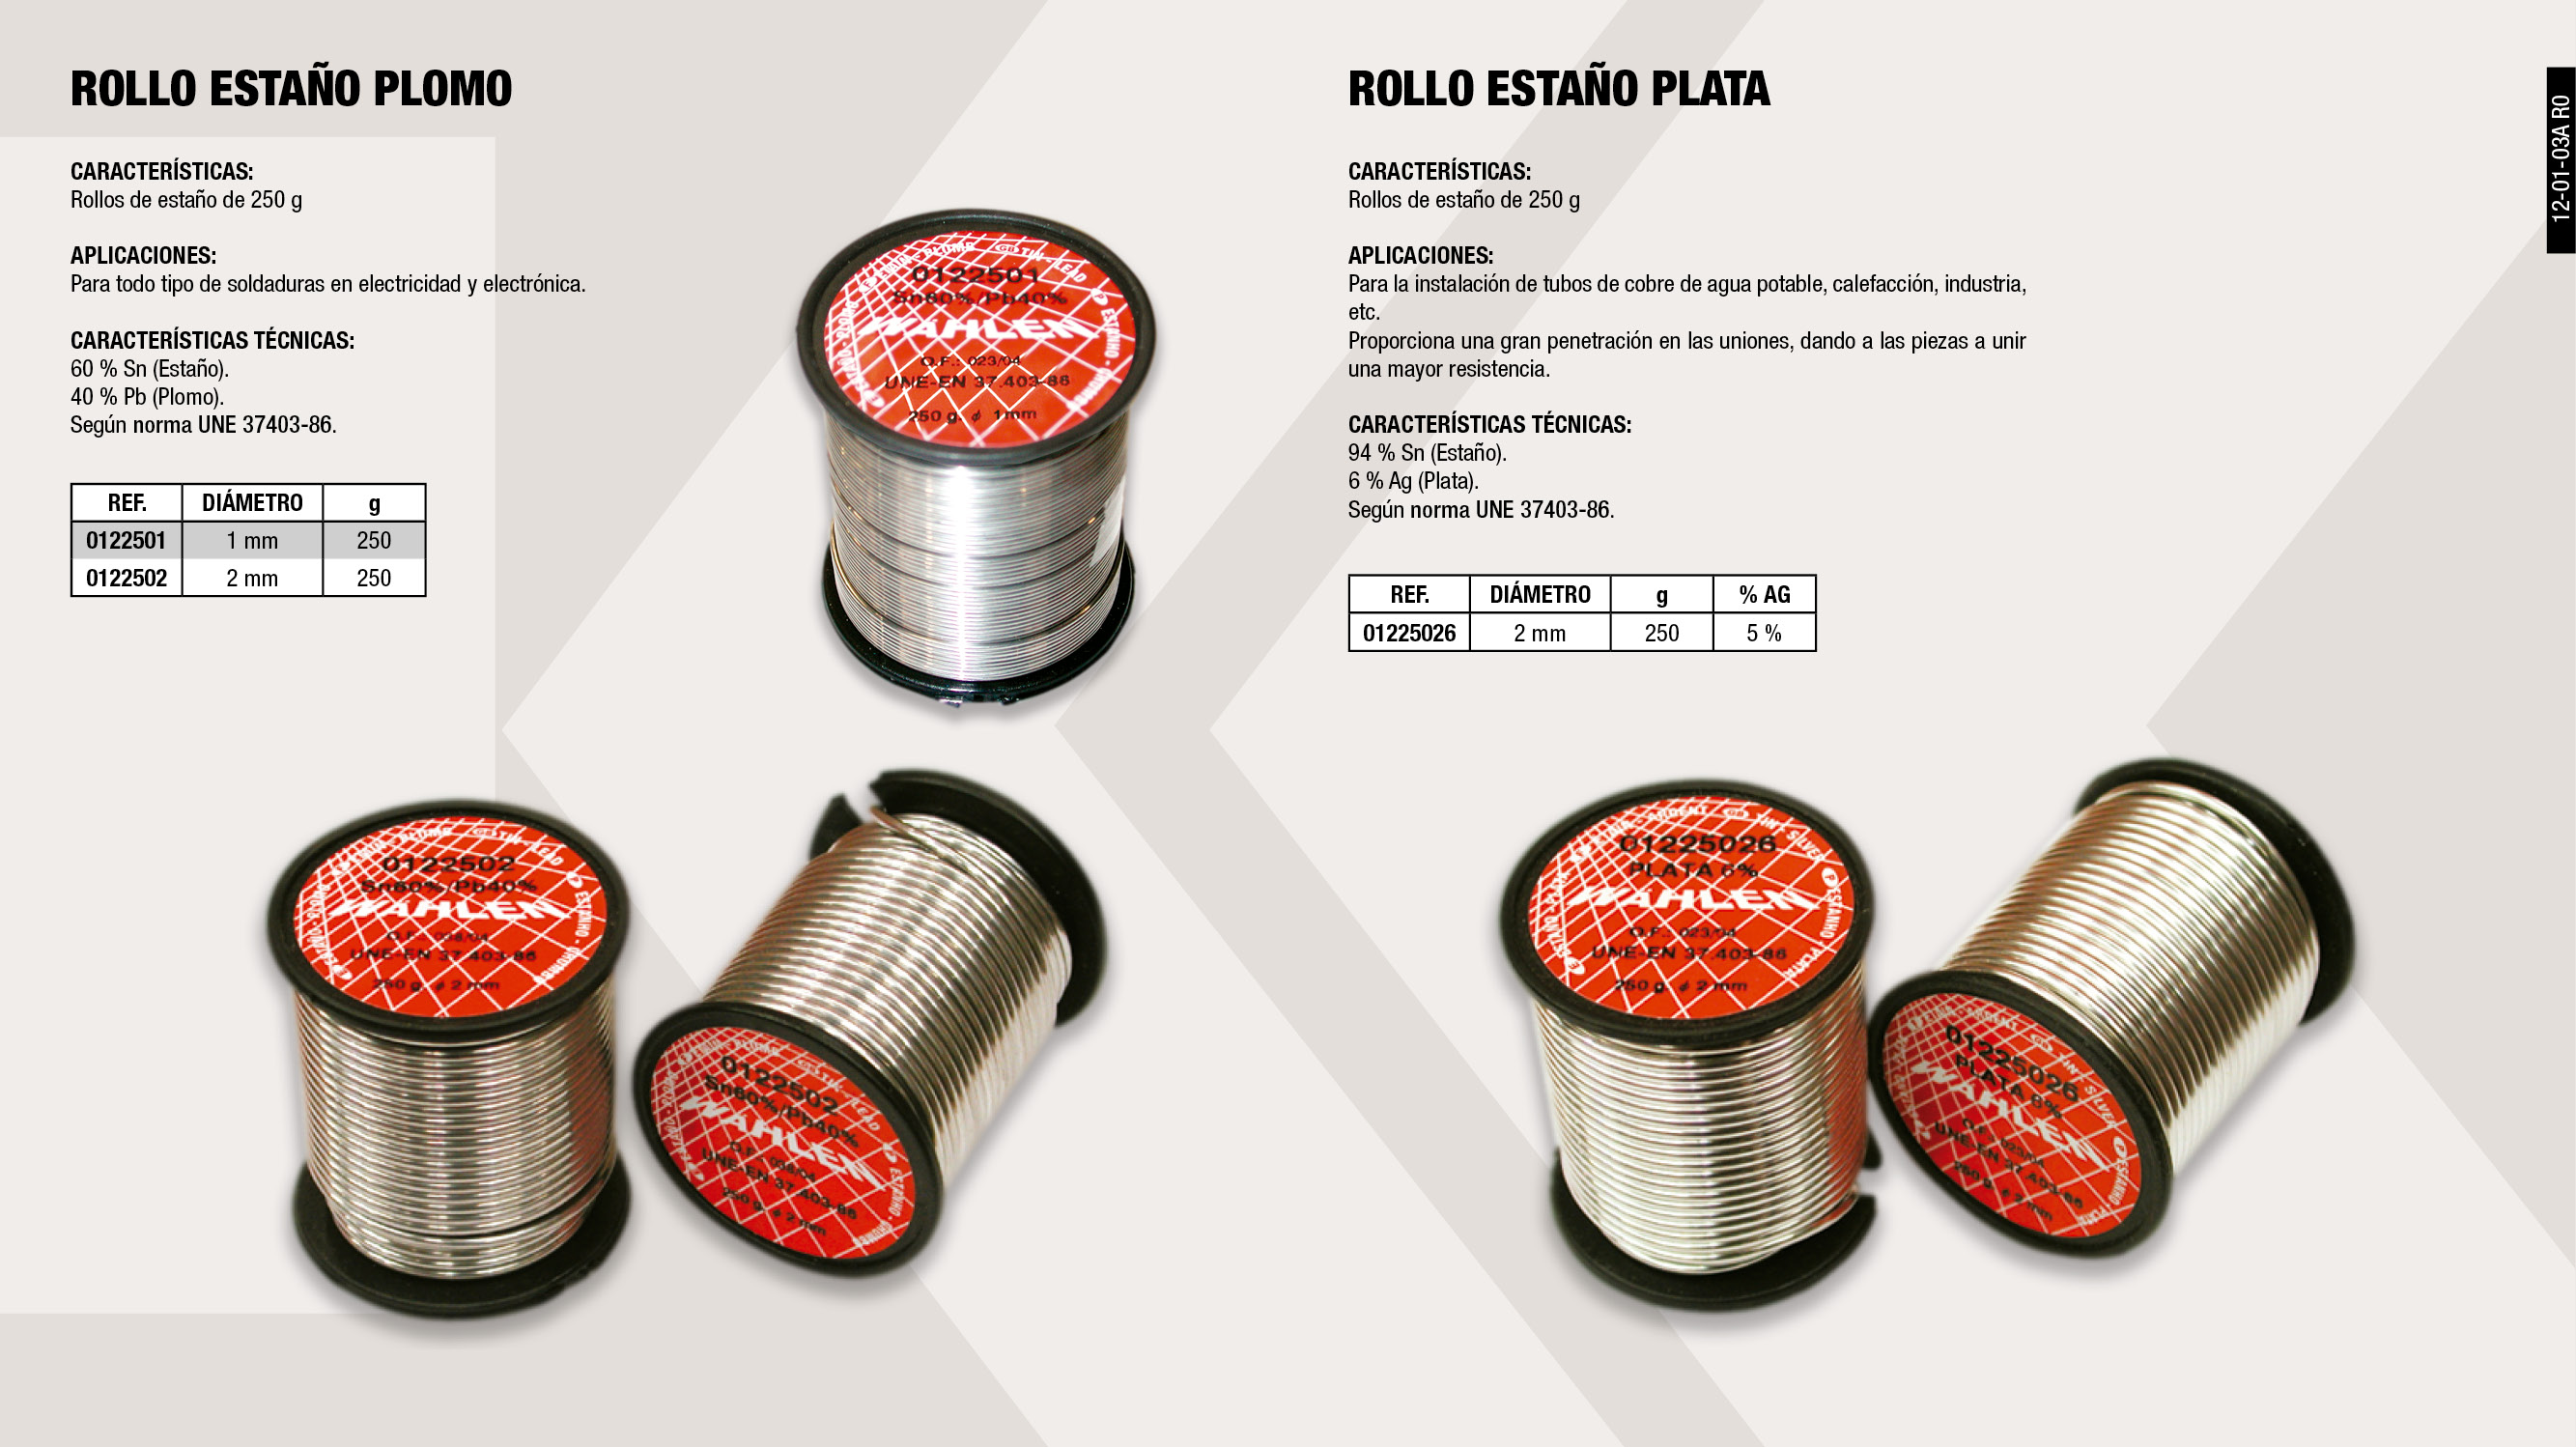 ROLLO ESTAÑO 250 GR 5% PLATA 2MM                            ,  									ROLLO ESTAÑO  PLOMO 250 GR 2MM                              ,  									ROLLO ESTAÑO  PLOMO 250 GR 1MM                              ,